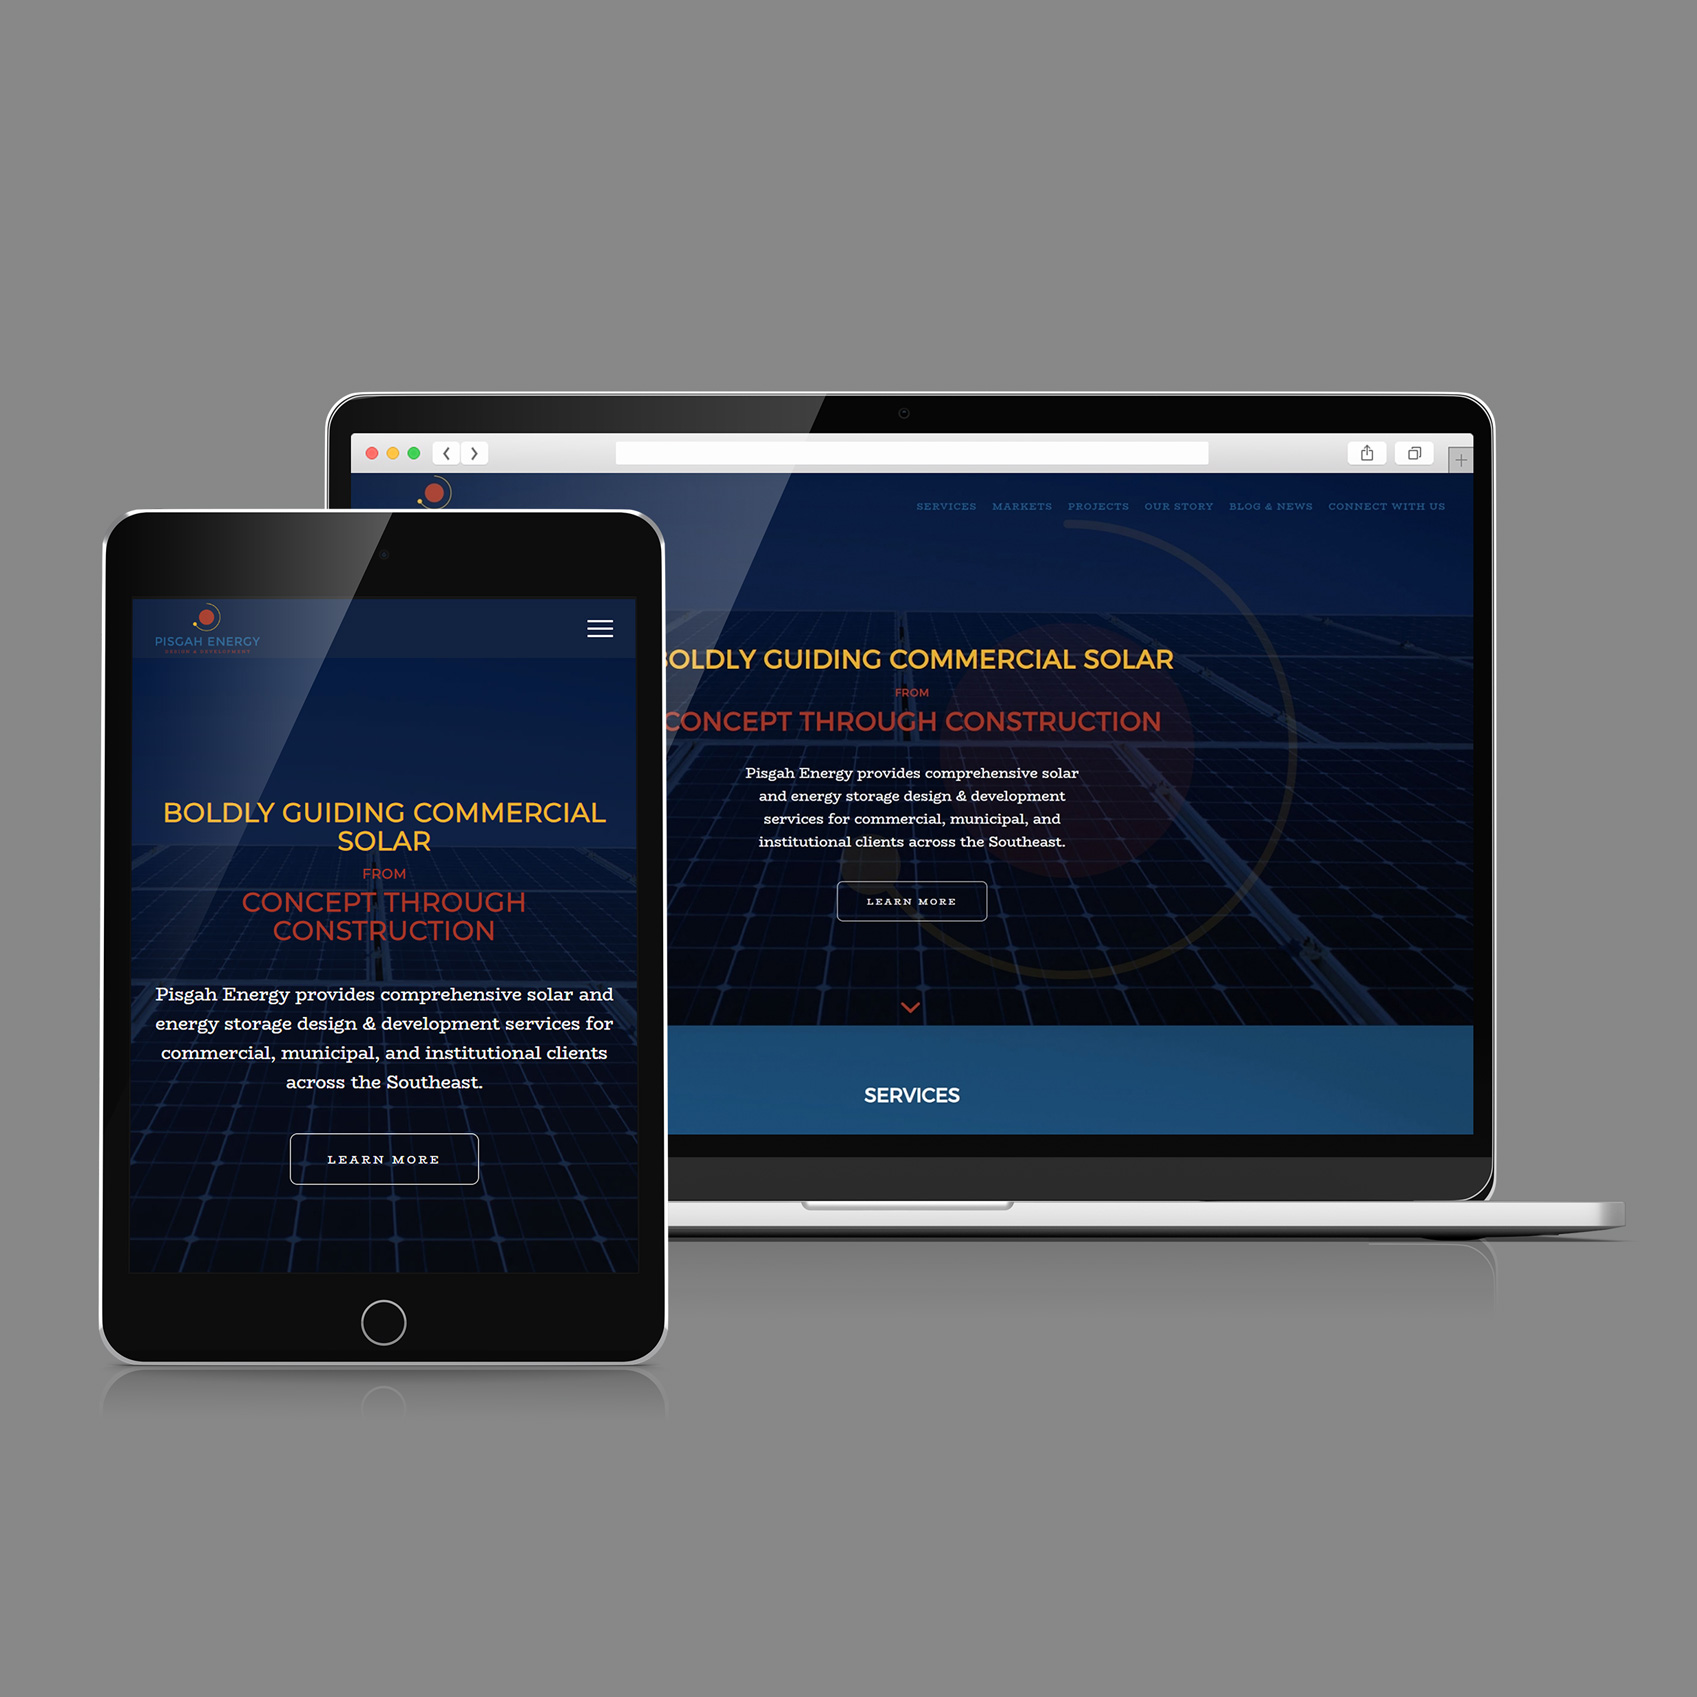 Web Design & Development - Pisgah Energy